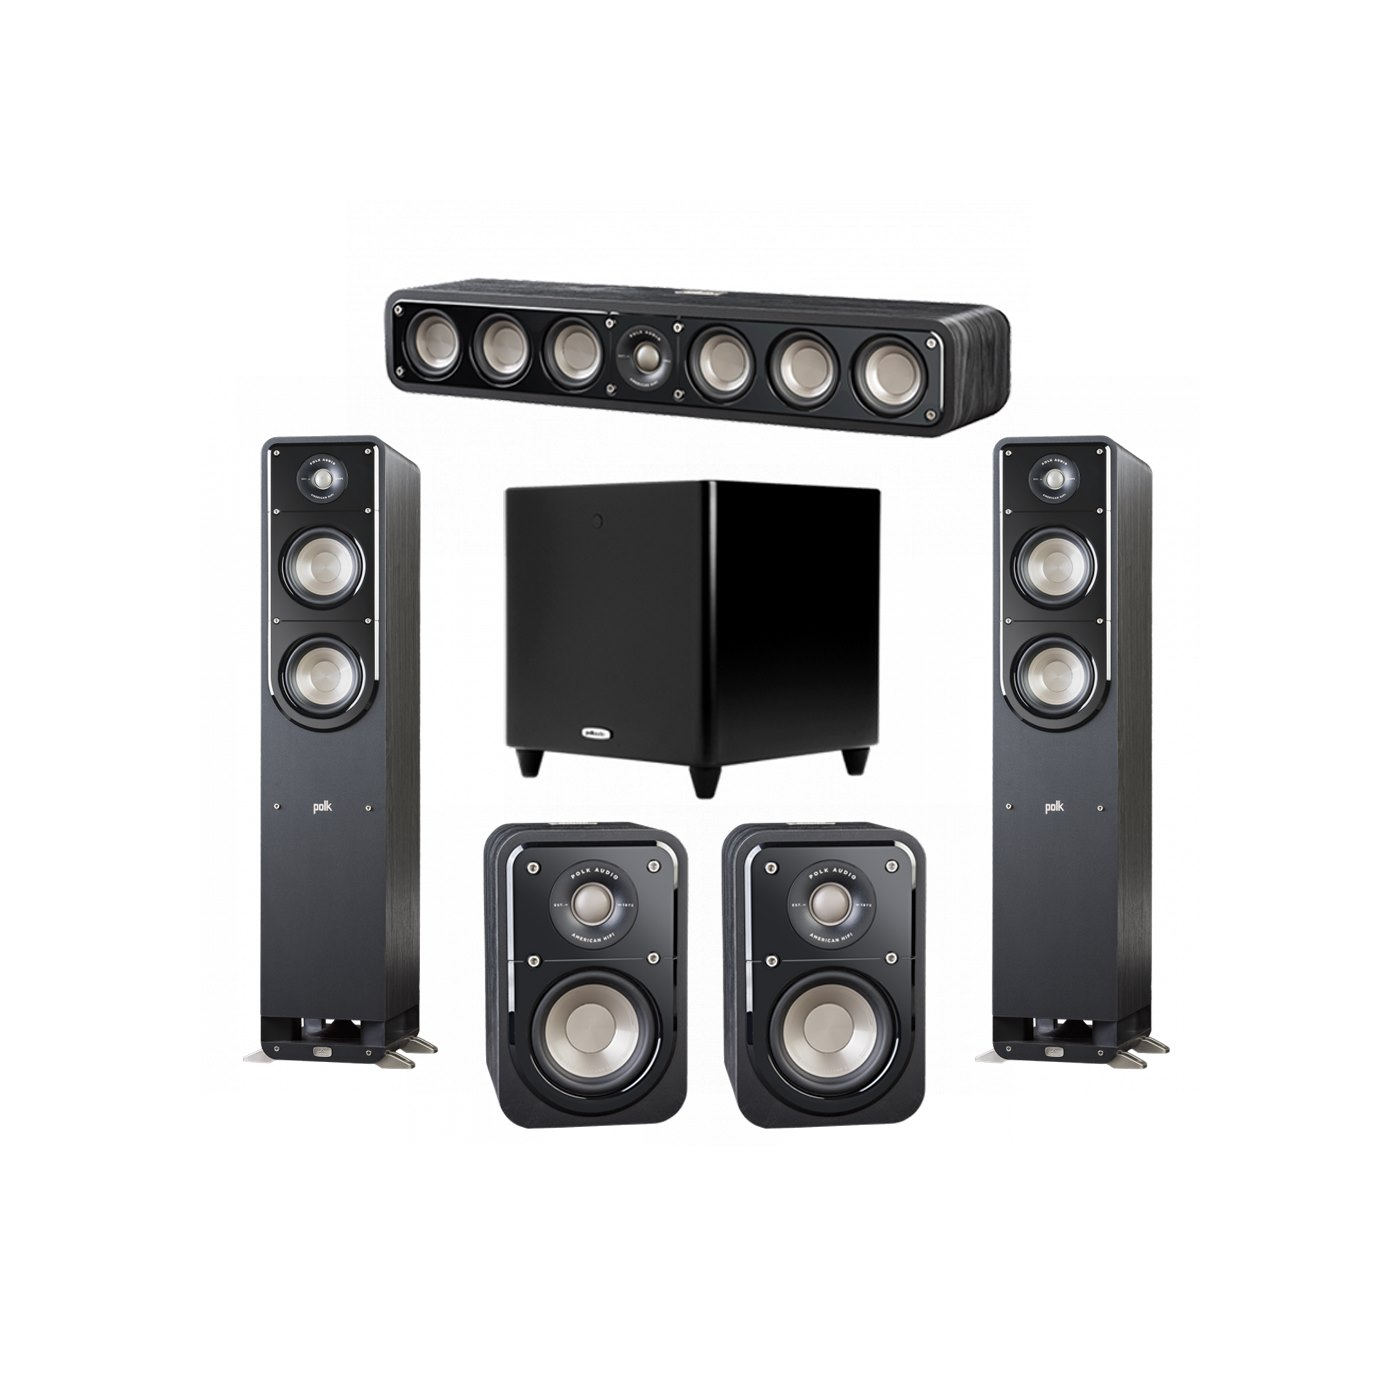 Polk Audio Signature 5.1 System with 2 S50 Tower Speaker, 1 Polk S35 Center Speaker, 2 Polk S10 Surround Speaker, 1 Polk DSW PRO 550 wi Subwoofer